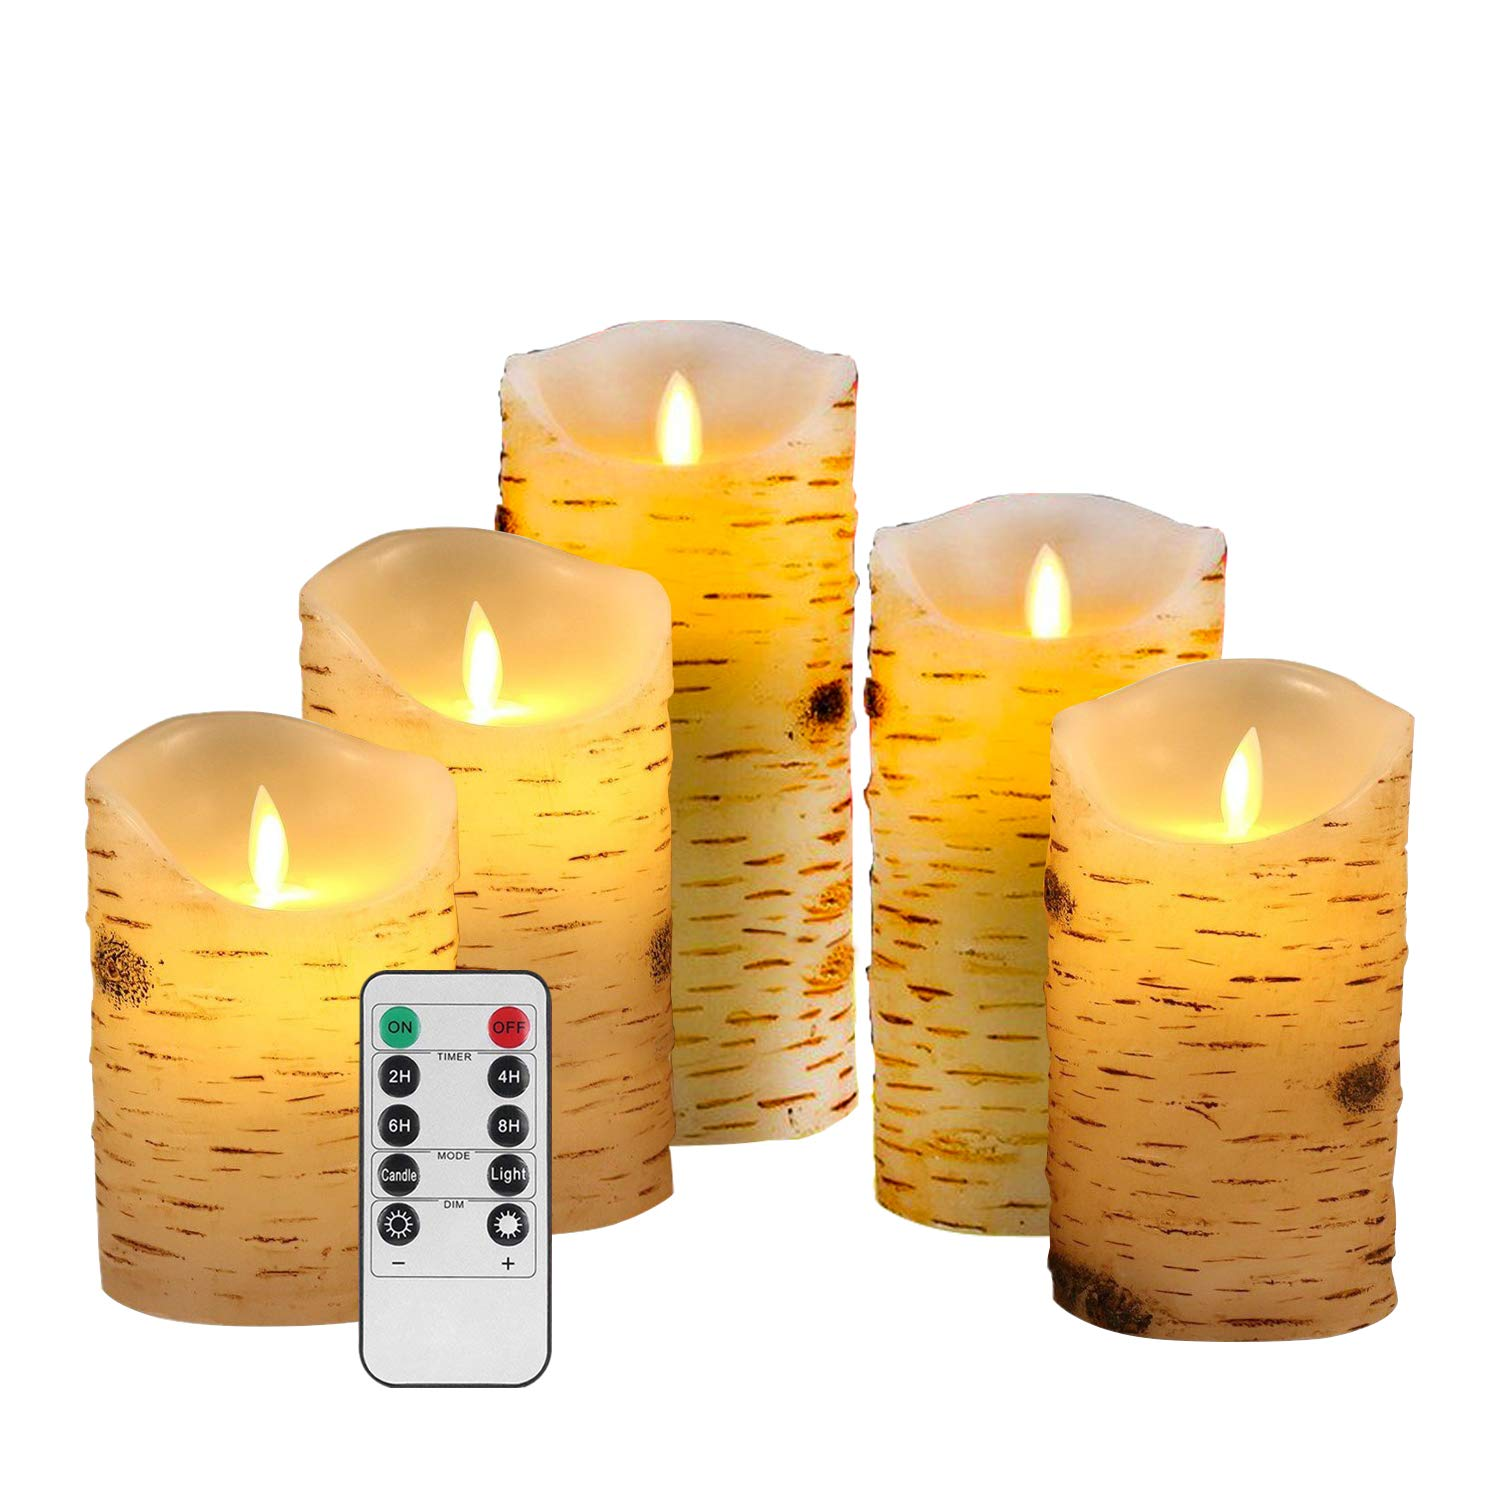 Flameless Candles Flickering Light Pillar Candles Real Smooth Wax for Gifts and Decoration Birch Bark